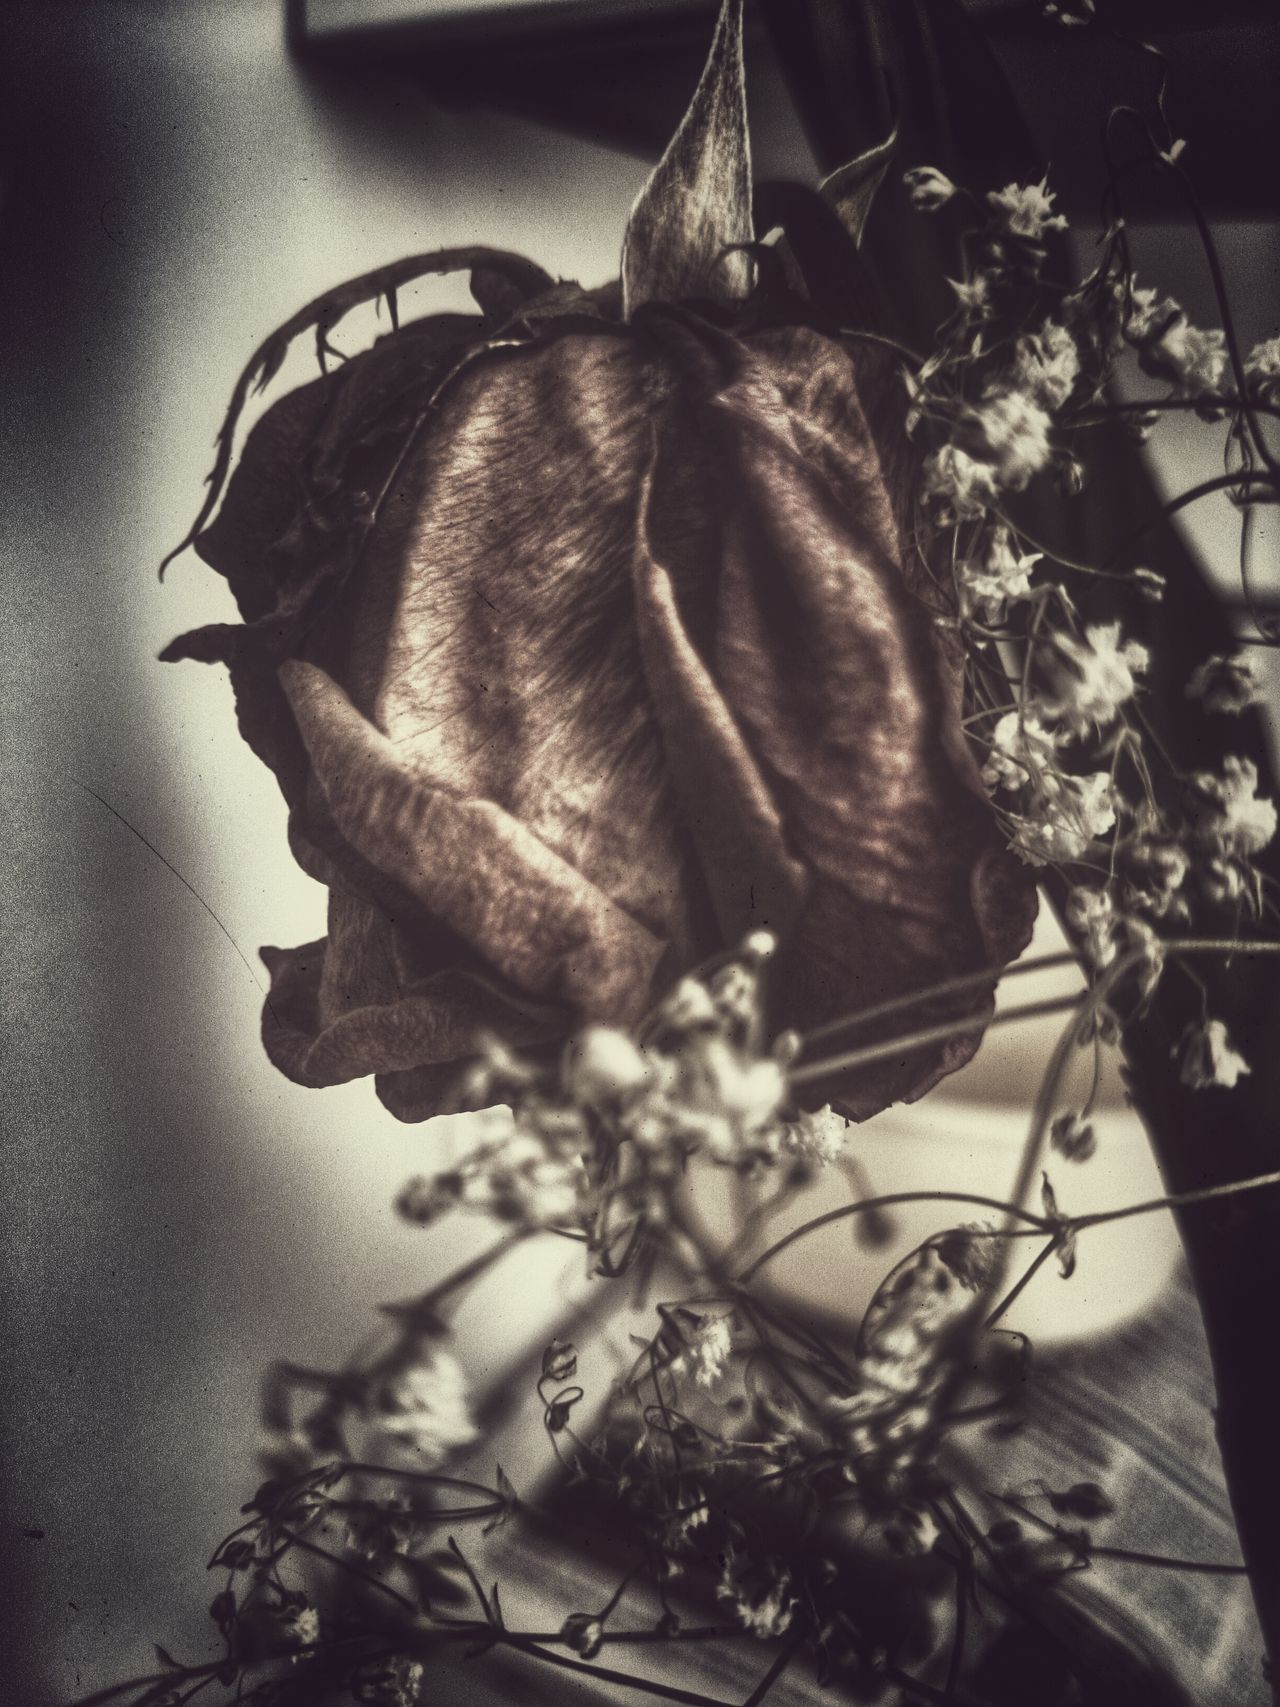 The Beauty Of Decay Rose♥ Still Life The Art Of Decay